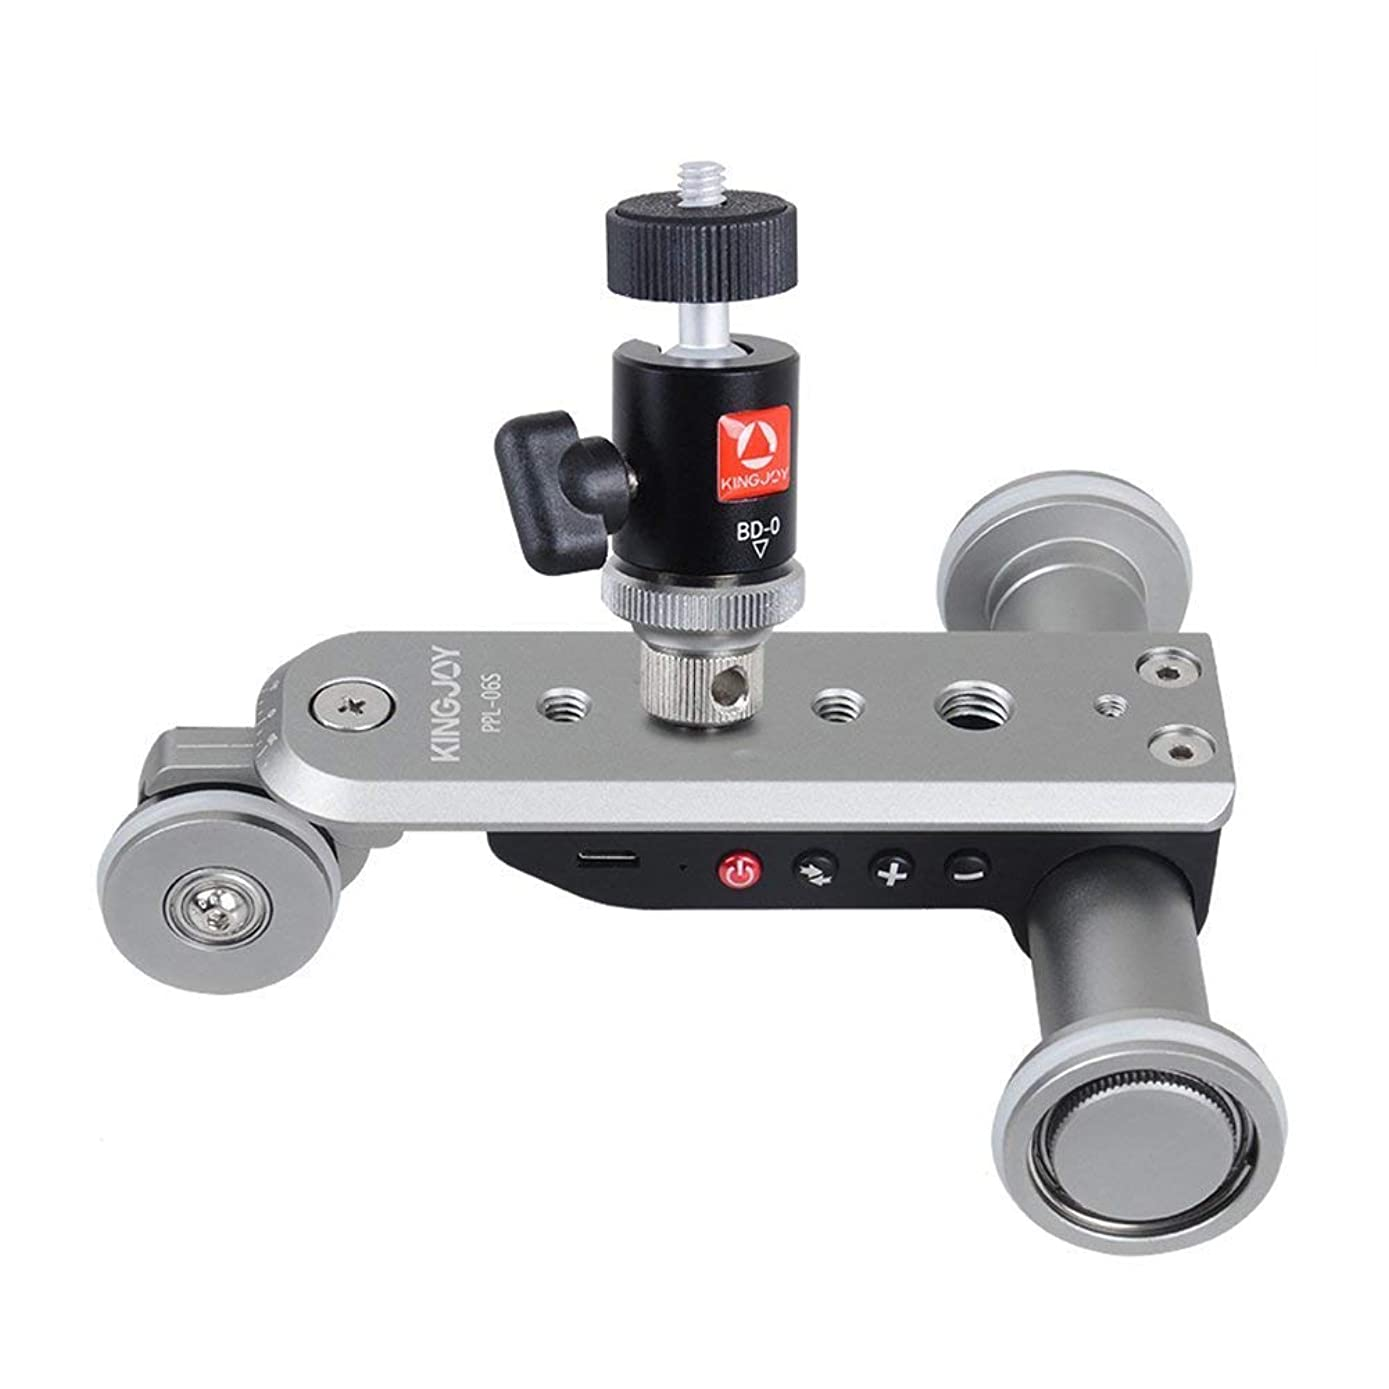 Smart Electric Camera Slider PPL-06S SLR Camera Eectric Mini Five Wheel Video Photography Track Guide for Canon Nikon Sony Digital SLR Camera and Smartphone